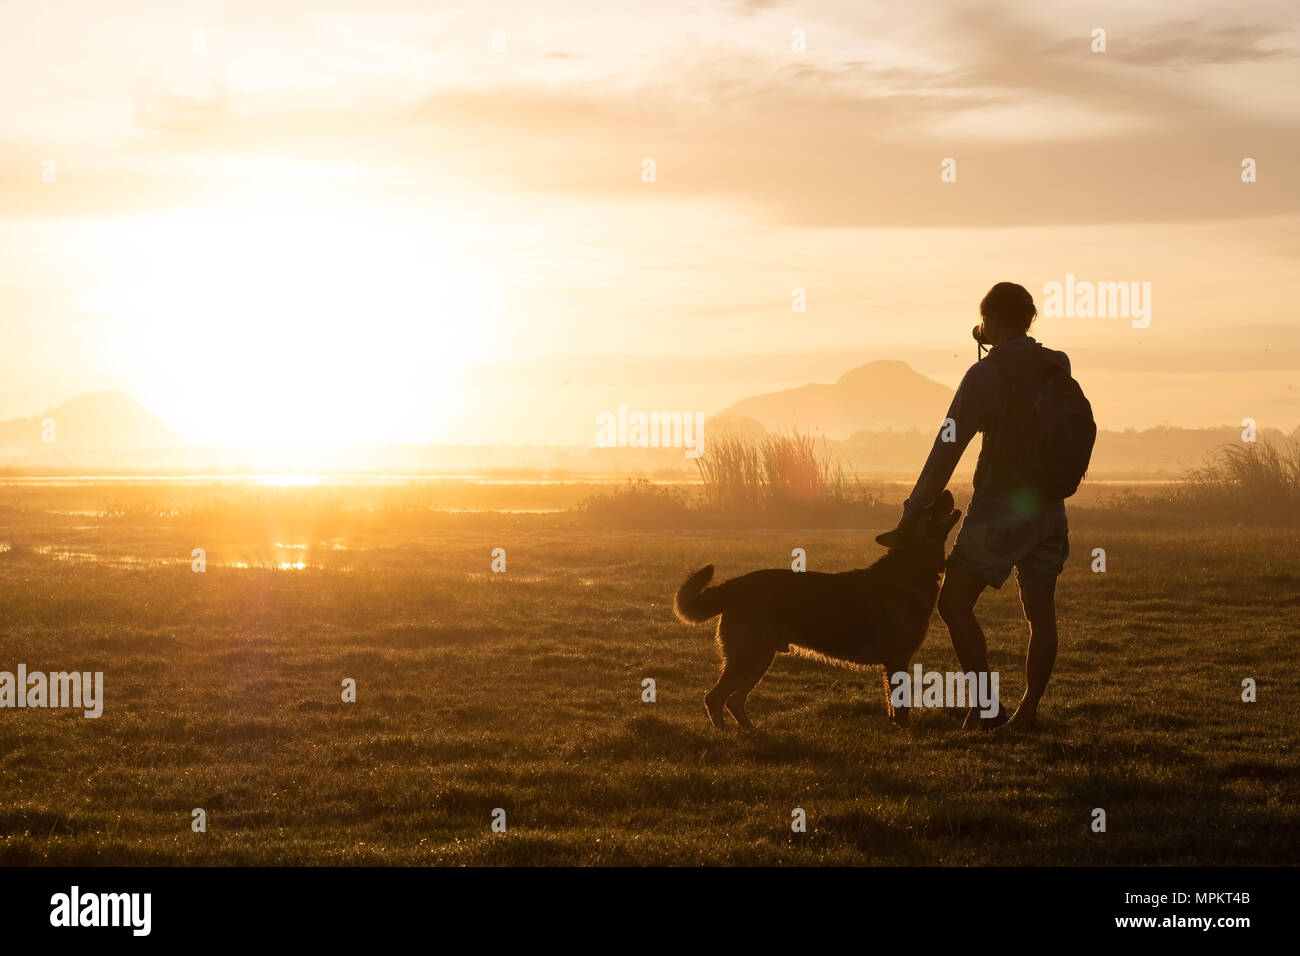 Silhouette of woman and dog walking on sunset background. - Stock Image